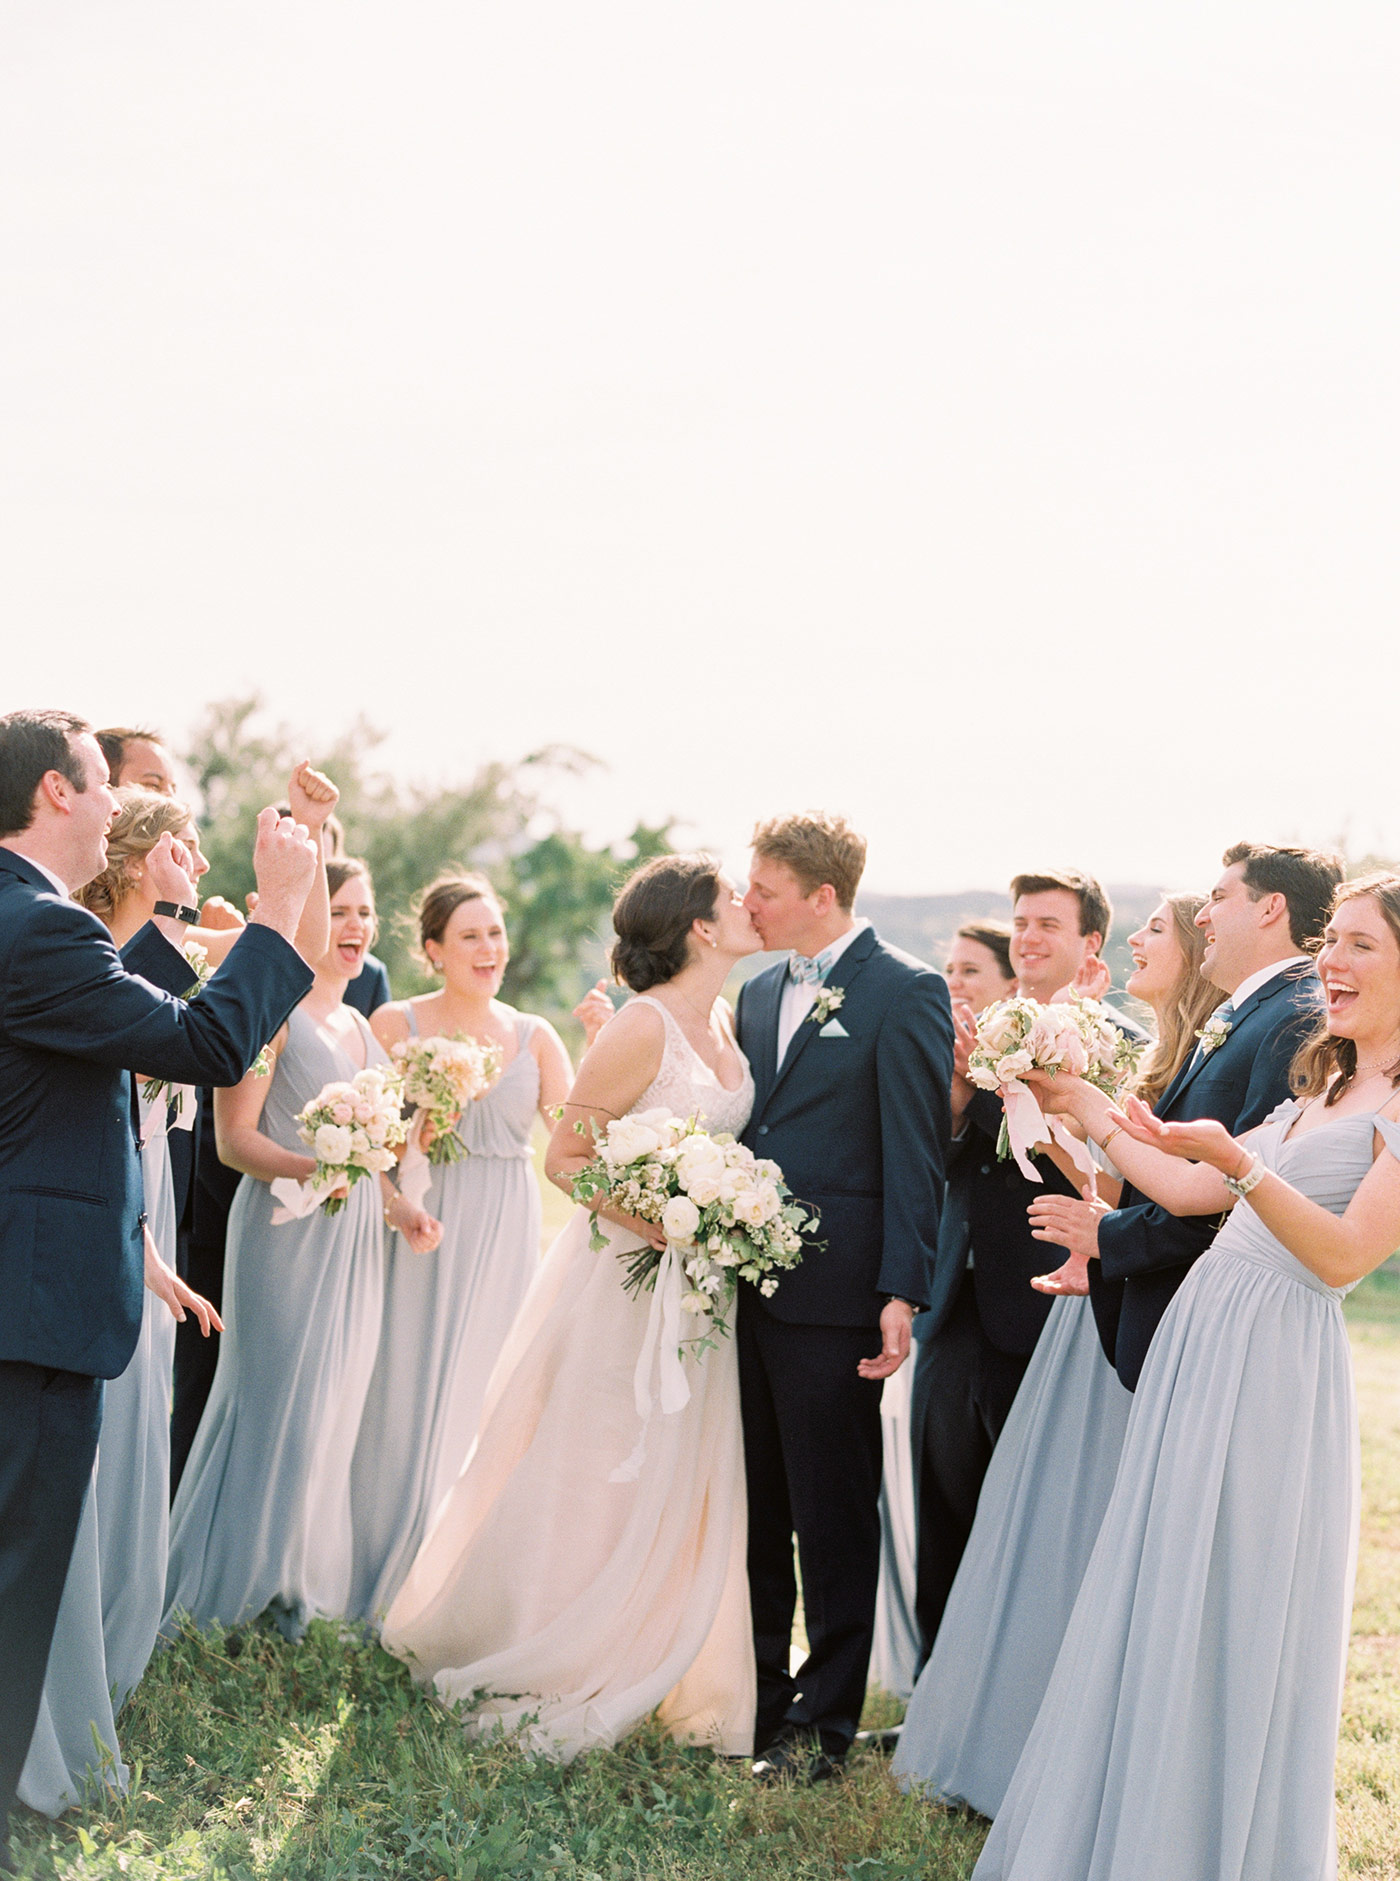 Bride and Groom and Bridal Party Fine Art Film Wedding Photographer San Luis Obispo California Ashley Ludaescher Photography